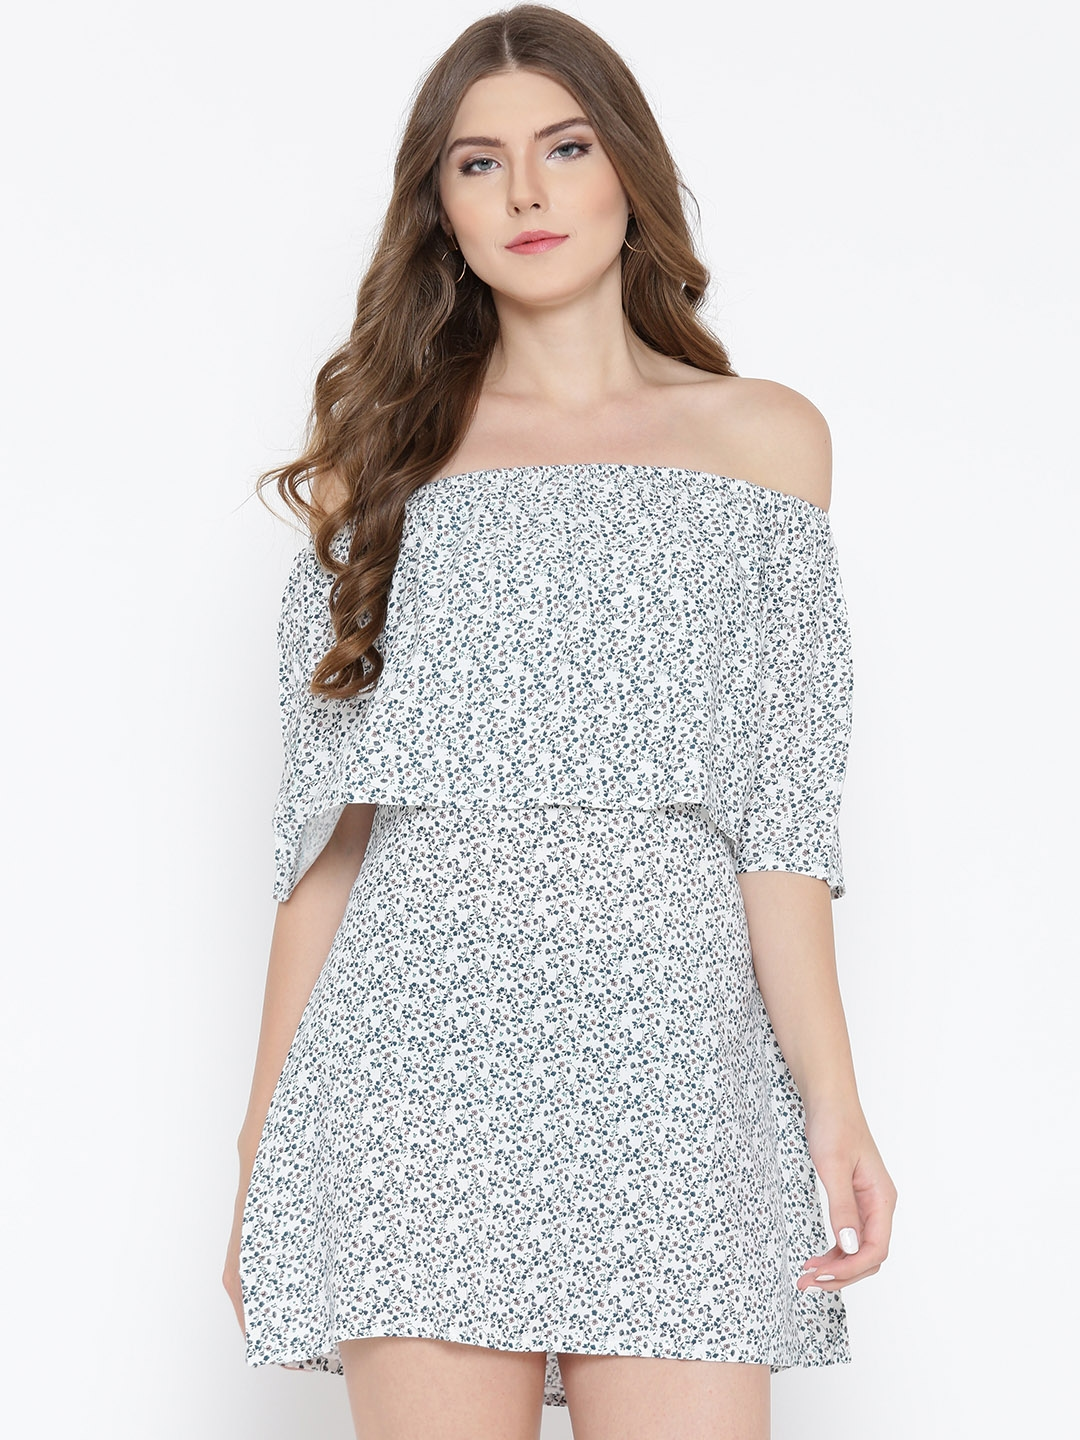 36902868957c Buy Sera Women White   Navy Printed Layered Off Shoulder Shift Dress -  Dresses for Women 1973770